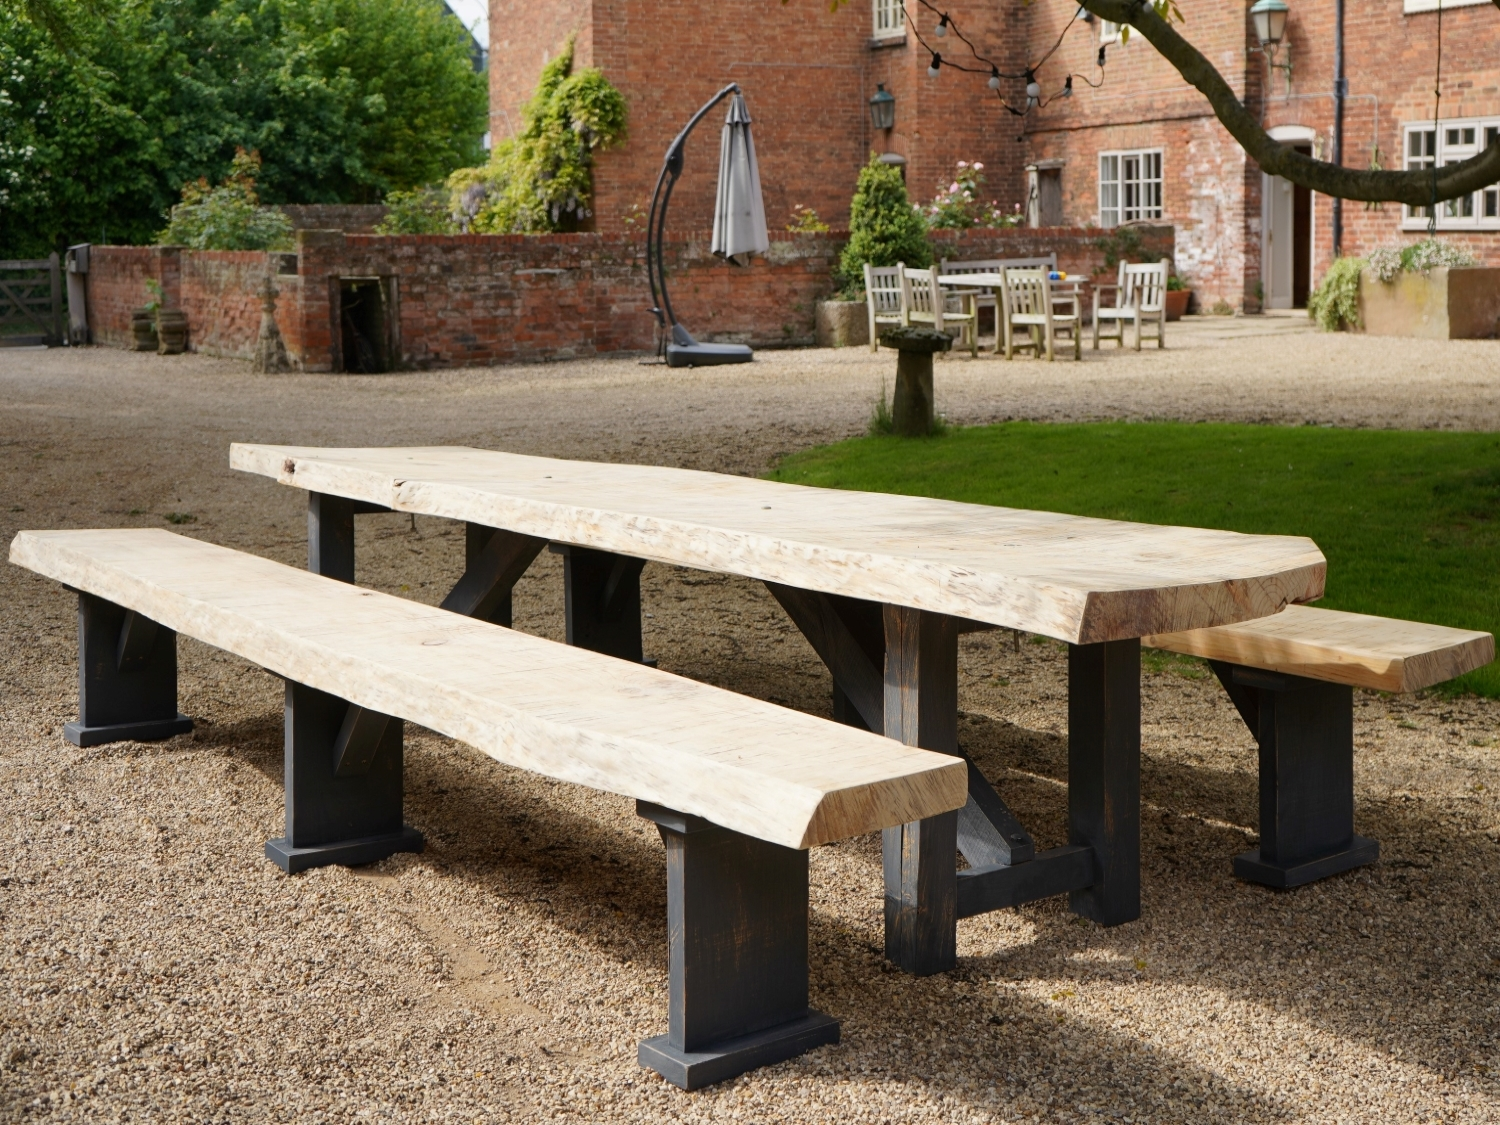 Waney Edge Sycamore Dining Table With Matching Benches